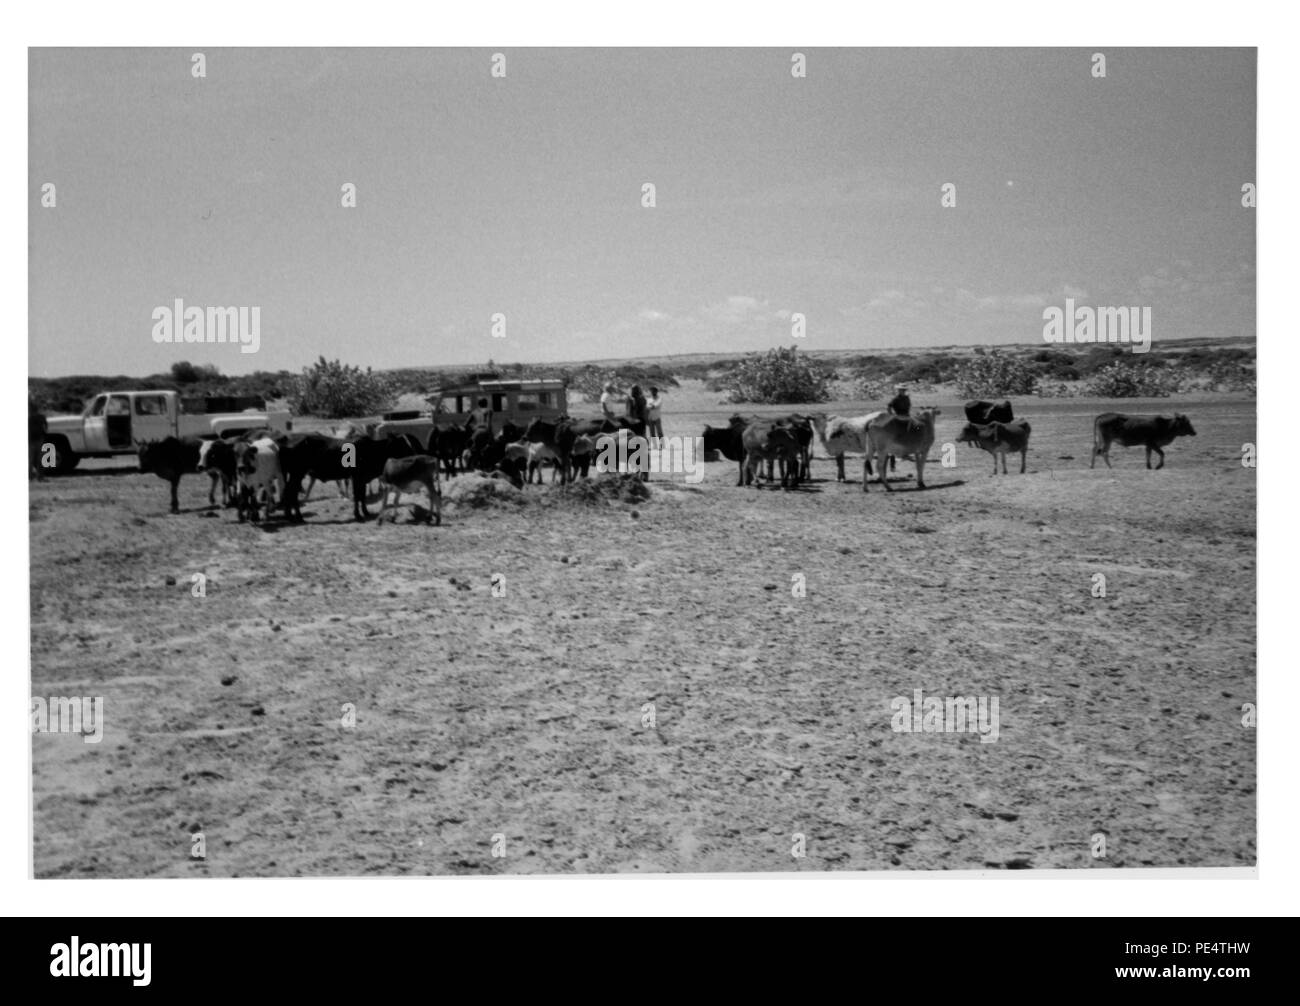 One of the many had dug shallow wells on the coast of Somalia. Most of these wells are dug in dry stream beds near the coast but usually have soft water intrusion in two to three days. The solution is to move a few feet and dig another well. Picture #16. - Stock Image